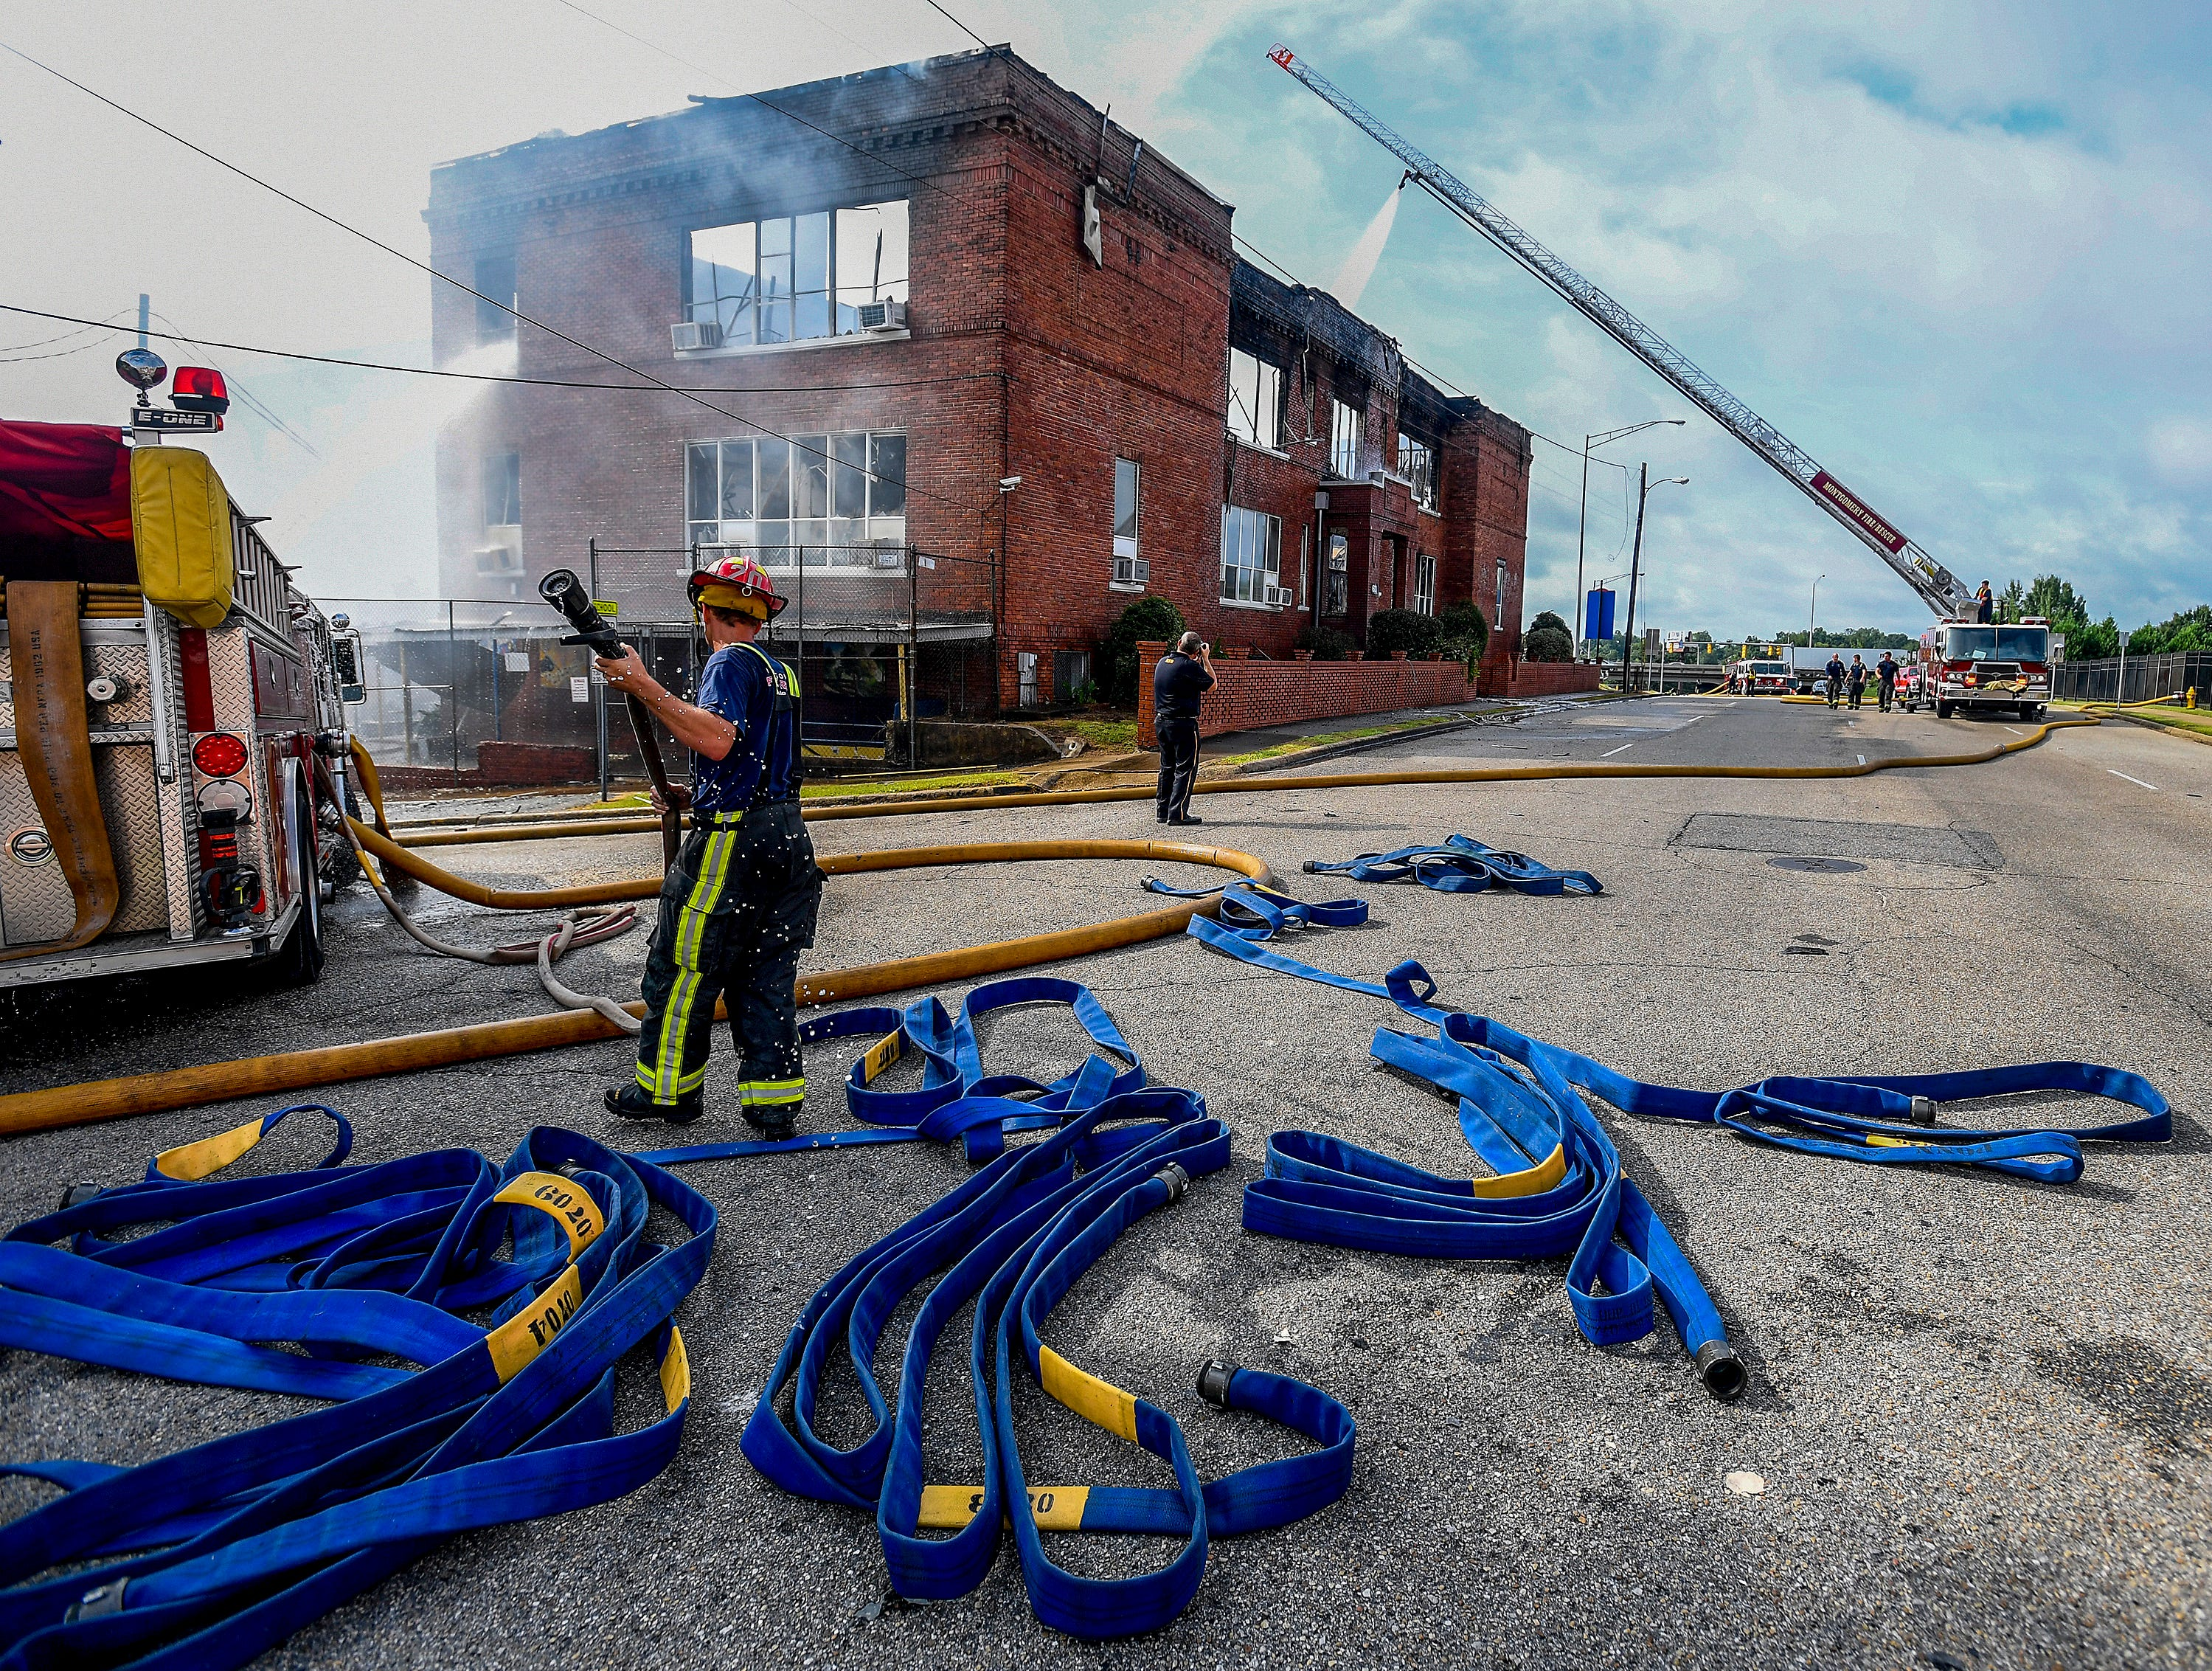 Montgomery firefighters work the scene of a major fire at Booker T. Washington Magnet School campus in Montgomery, Ala. on Saturday morning August 18, 2018. A building was destroyed in the fire.